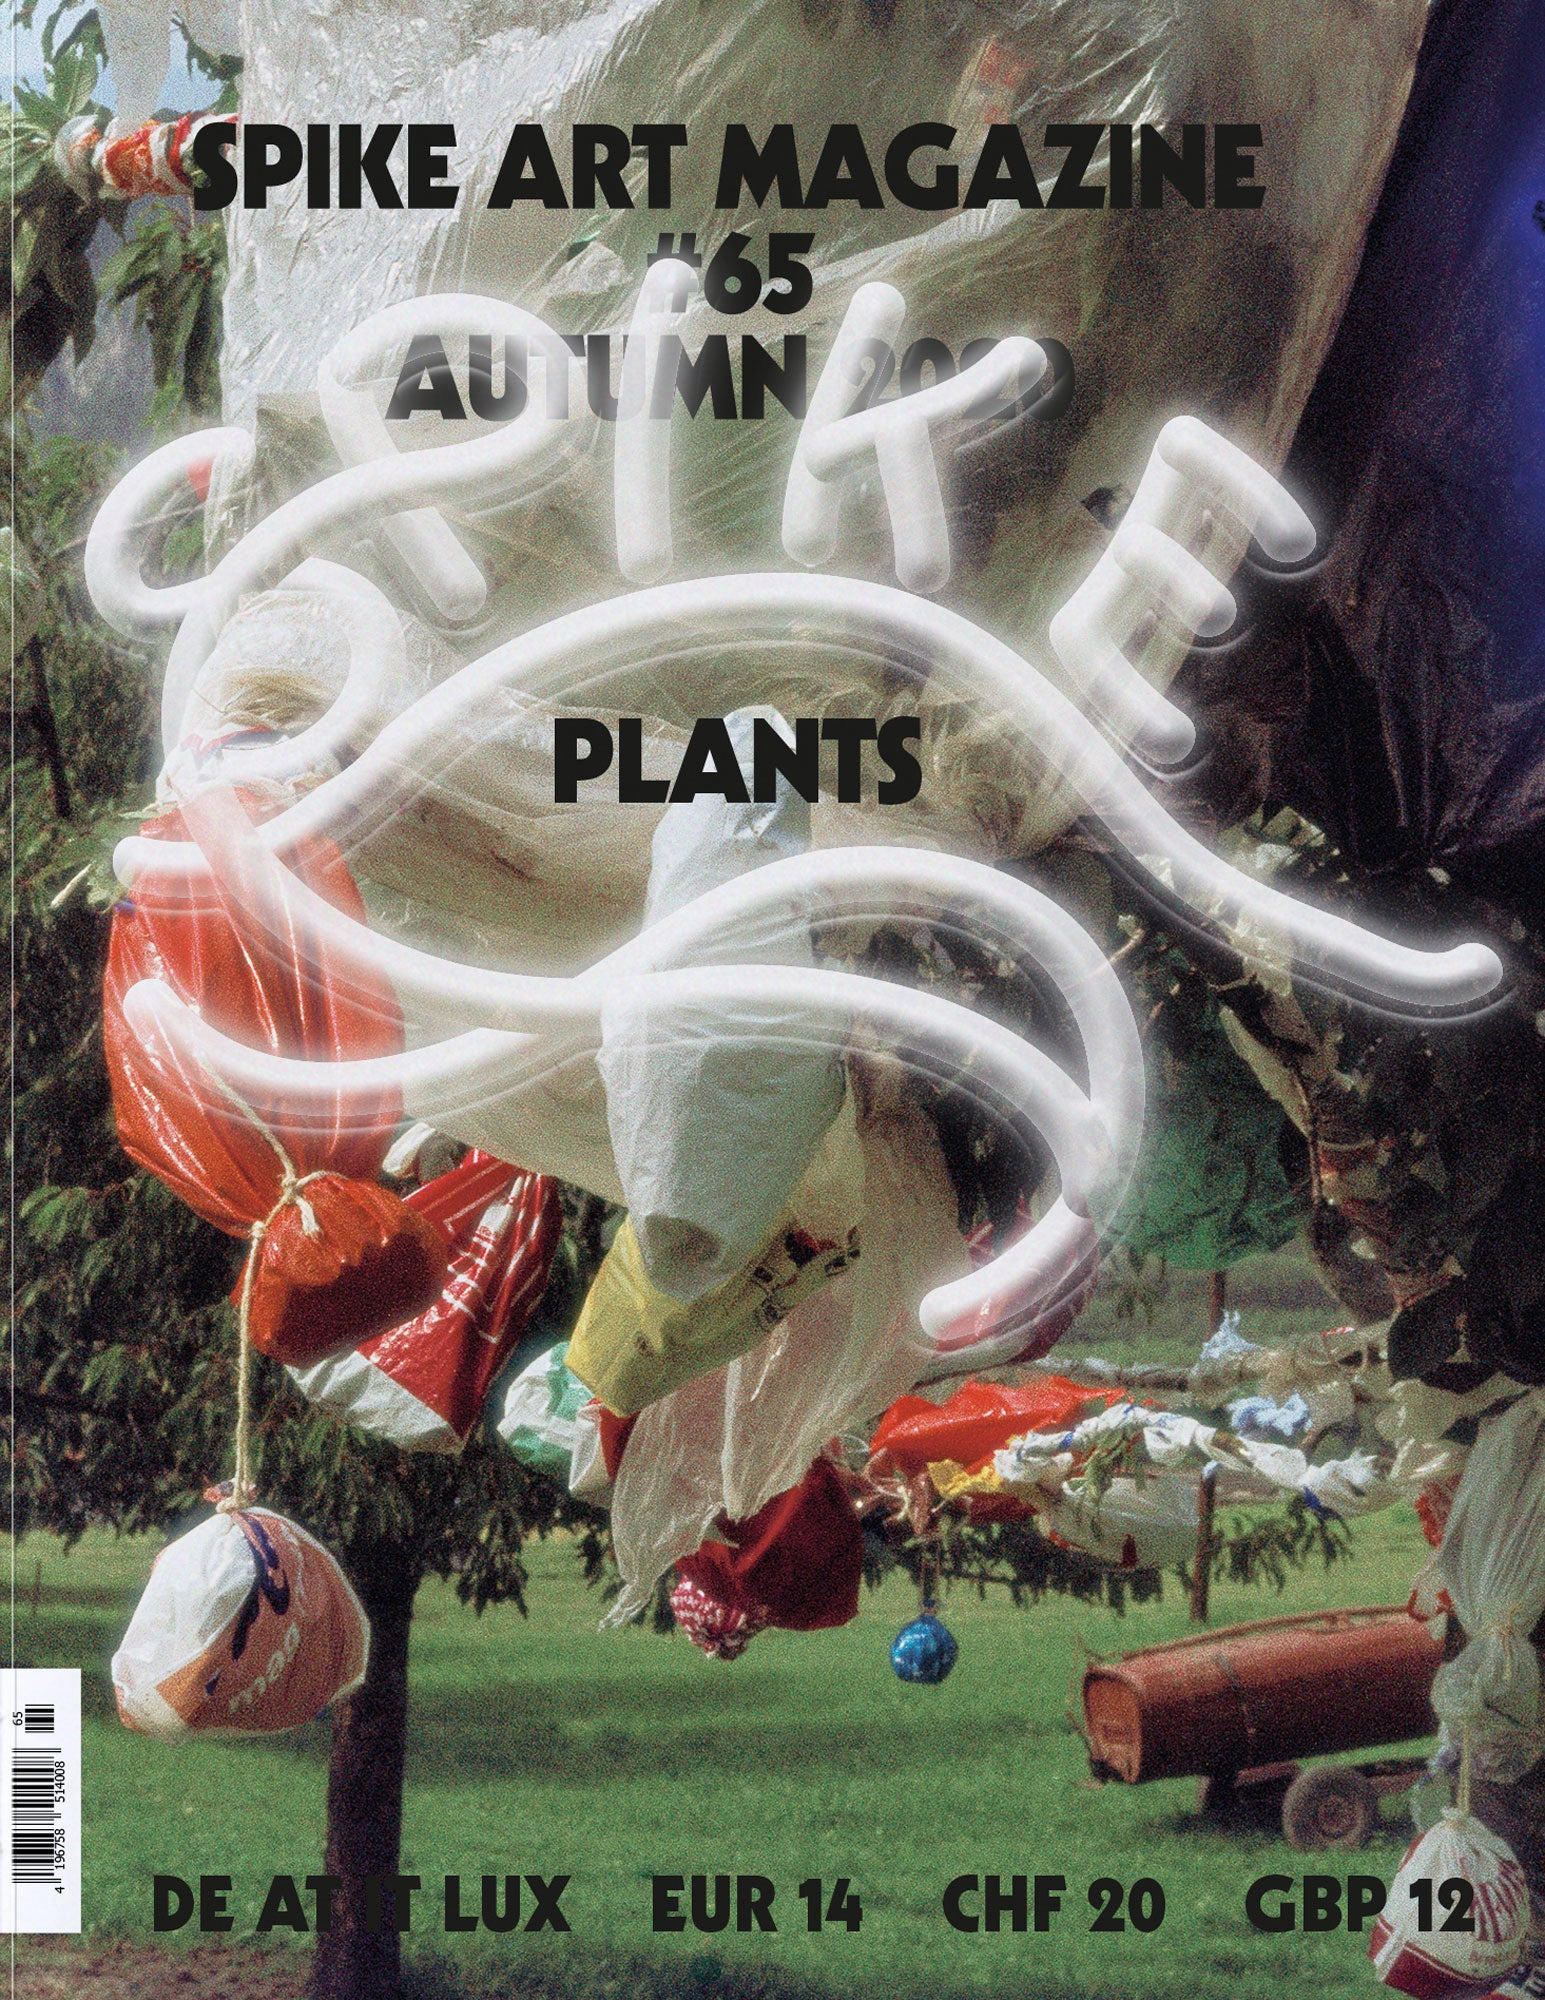 ISSUE 65 (AUTUMN 2020): Plants